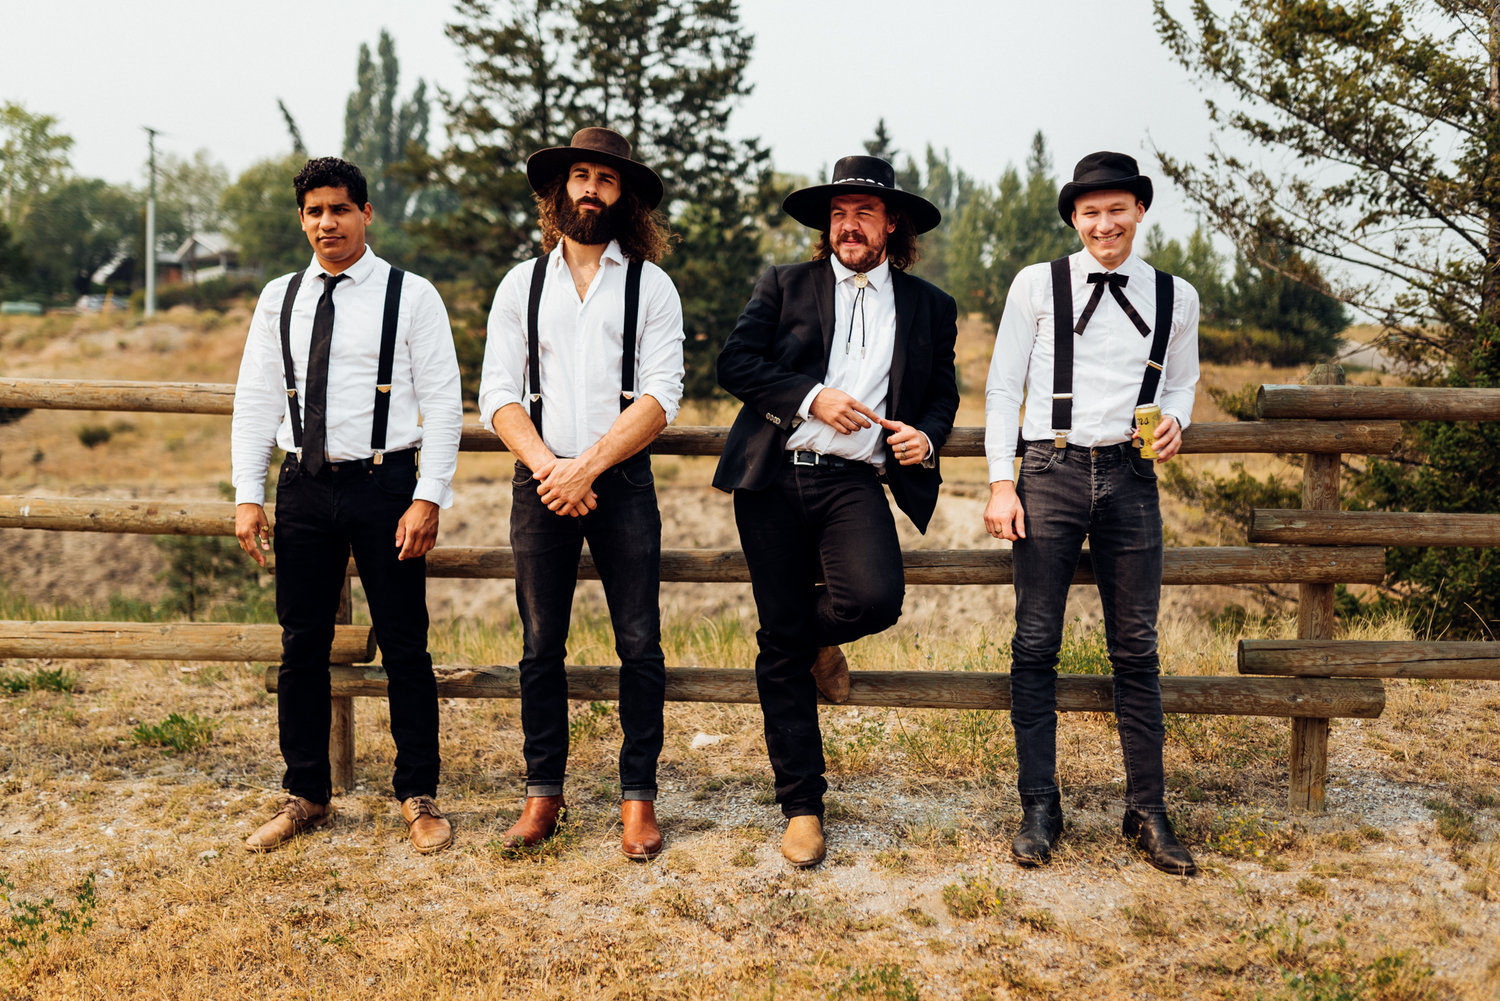 The Dead South with Legendary Shack Shakers